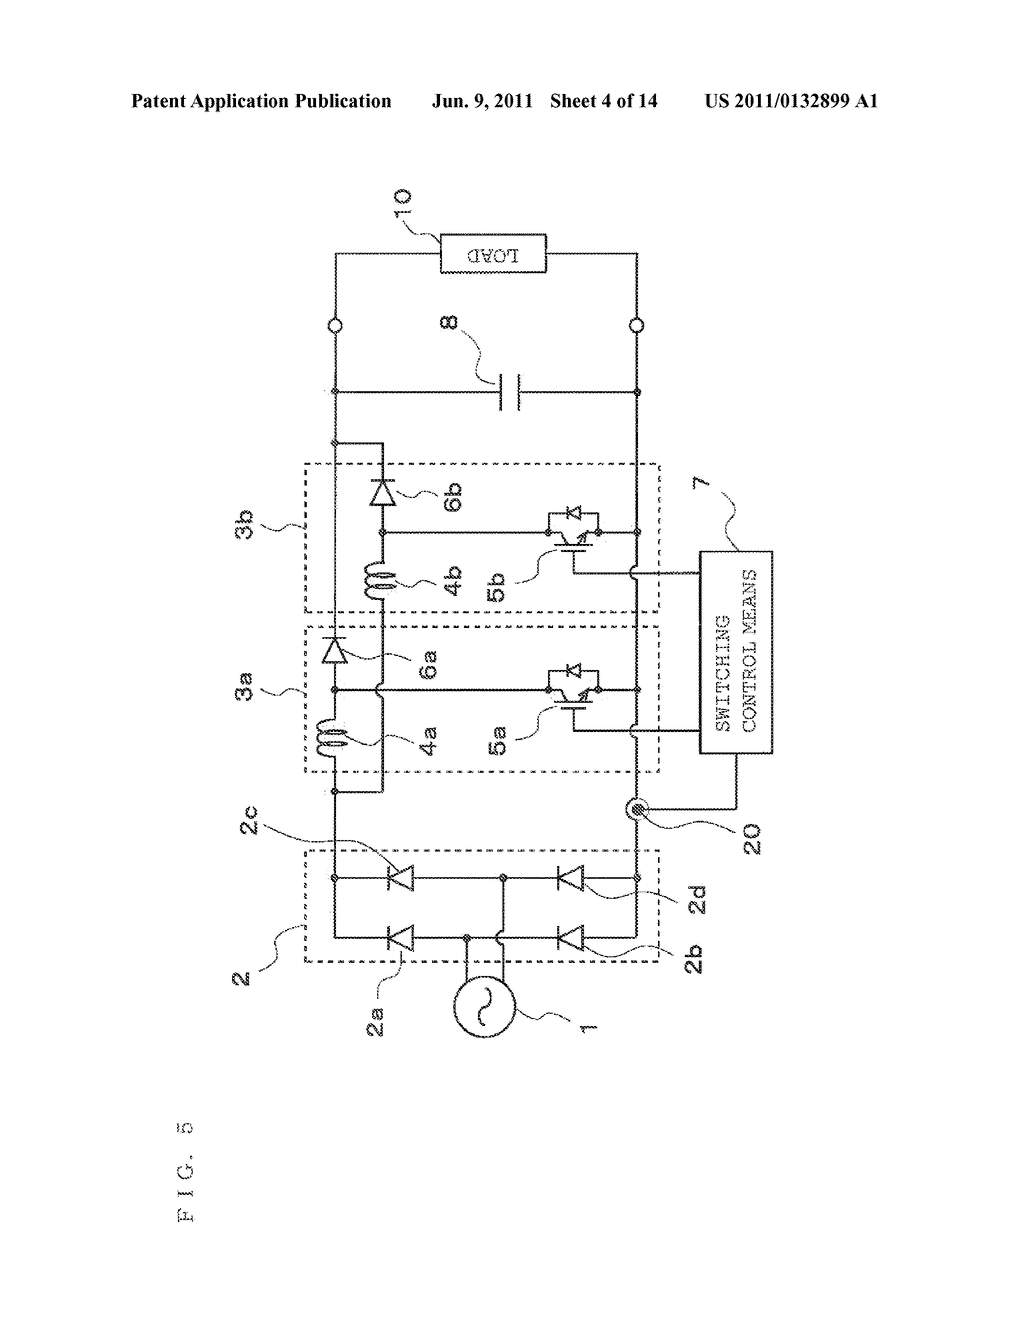 Converter Circuit And Motor Drive Apparatus Air Conditioner Induction Heating Circuits Refrigerator Cooker Provided With The Diagram Schematic